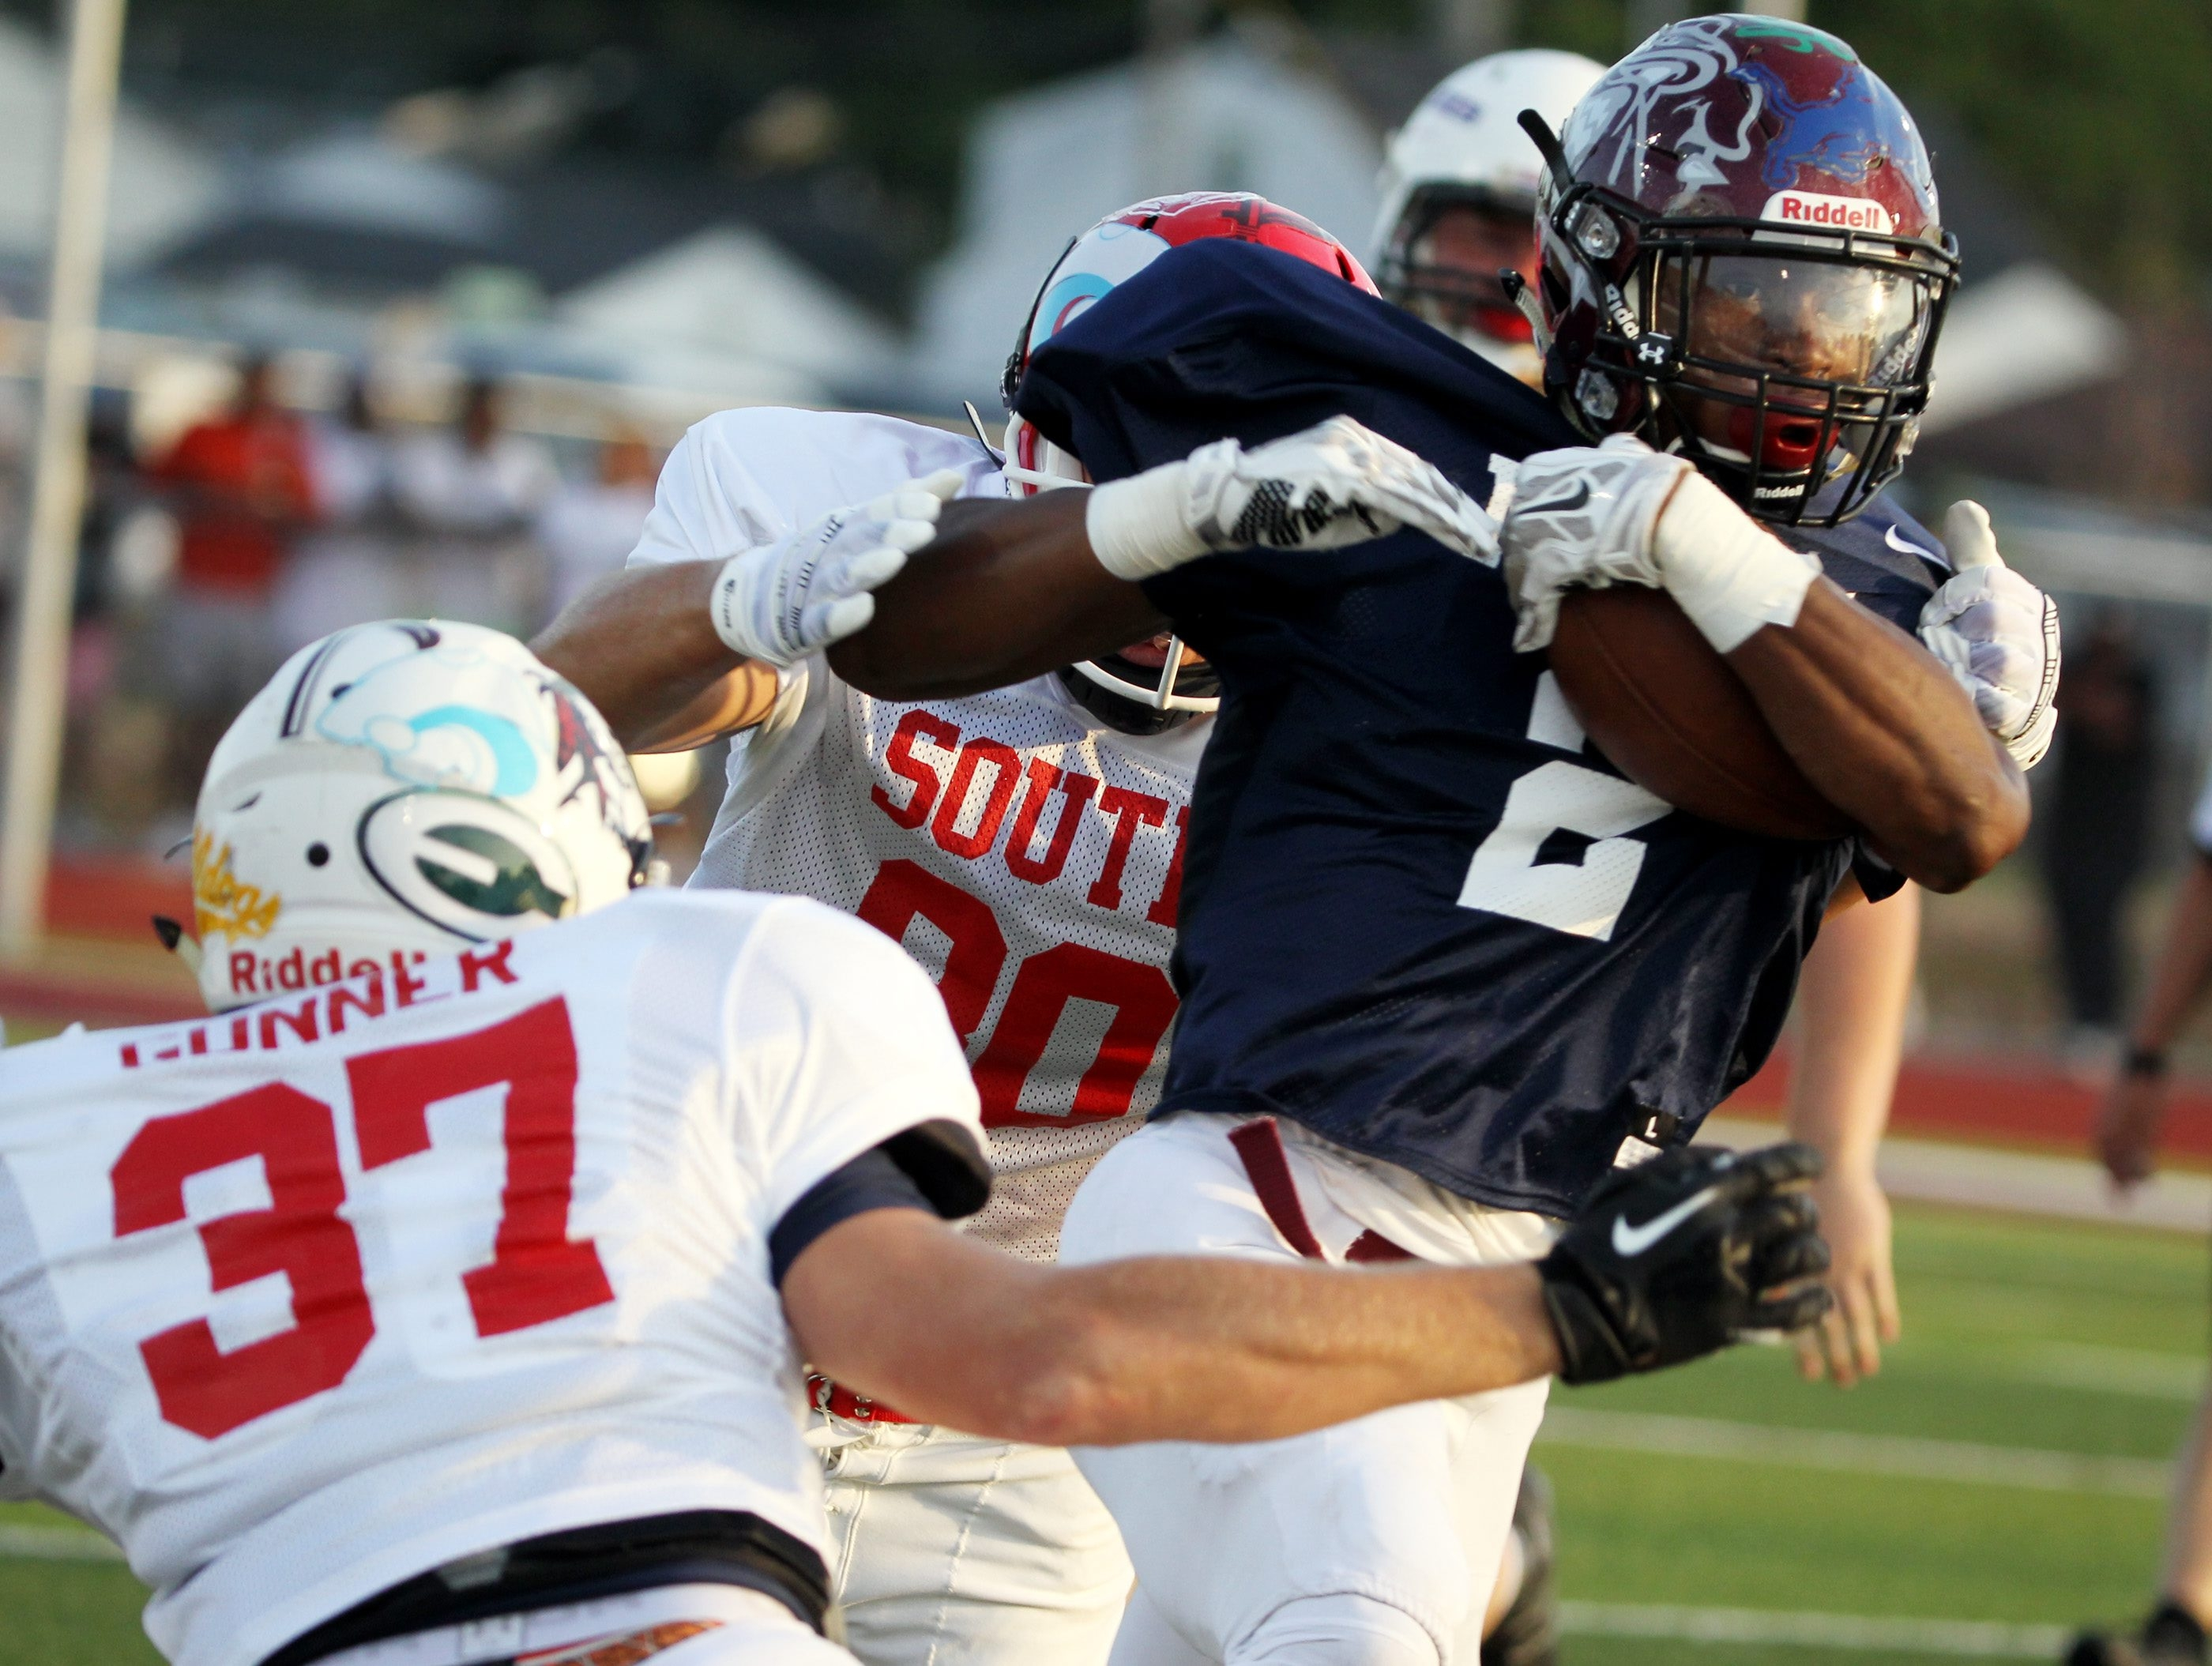 Darren Thompson of the North runs for a first down against Henry Gunner of the South in the Kensington Lions All-Star game.